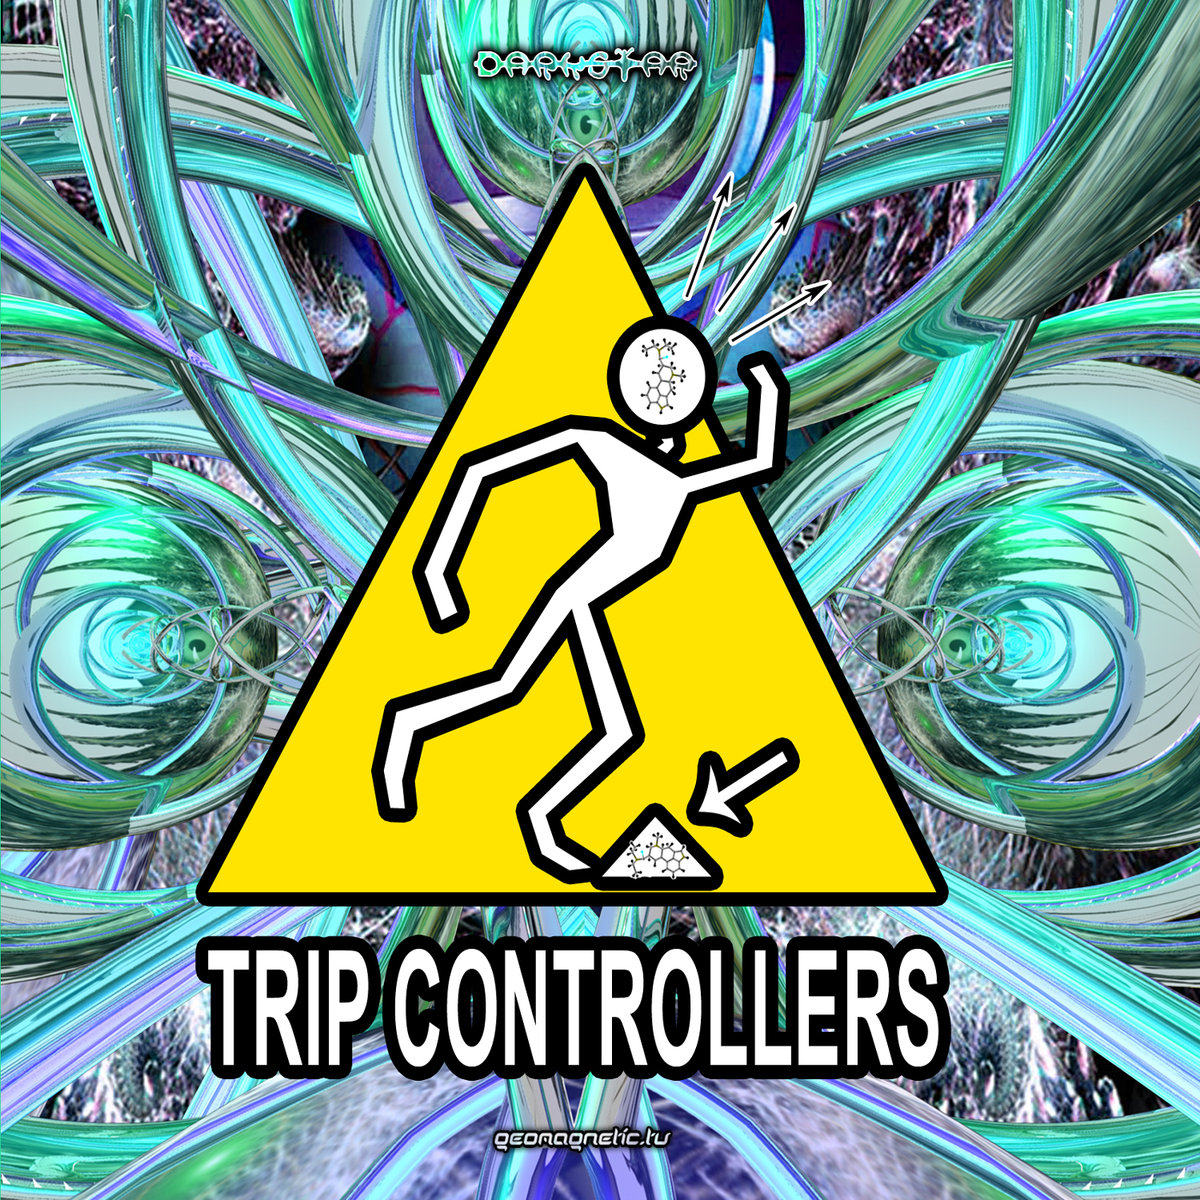 Darkforce - Bad Trip @ 'Various Artists - Trip Controllers (Compiled by Dr. Spook)' album (electronic, goa)